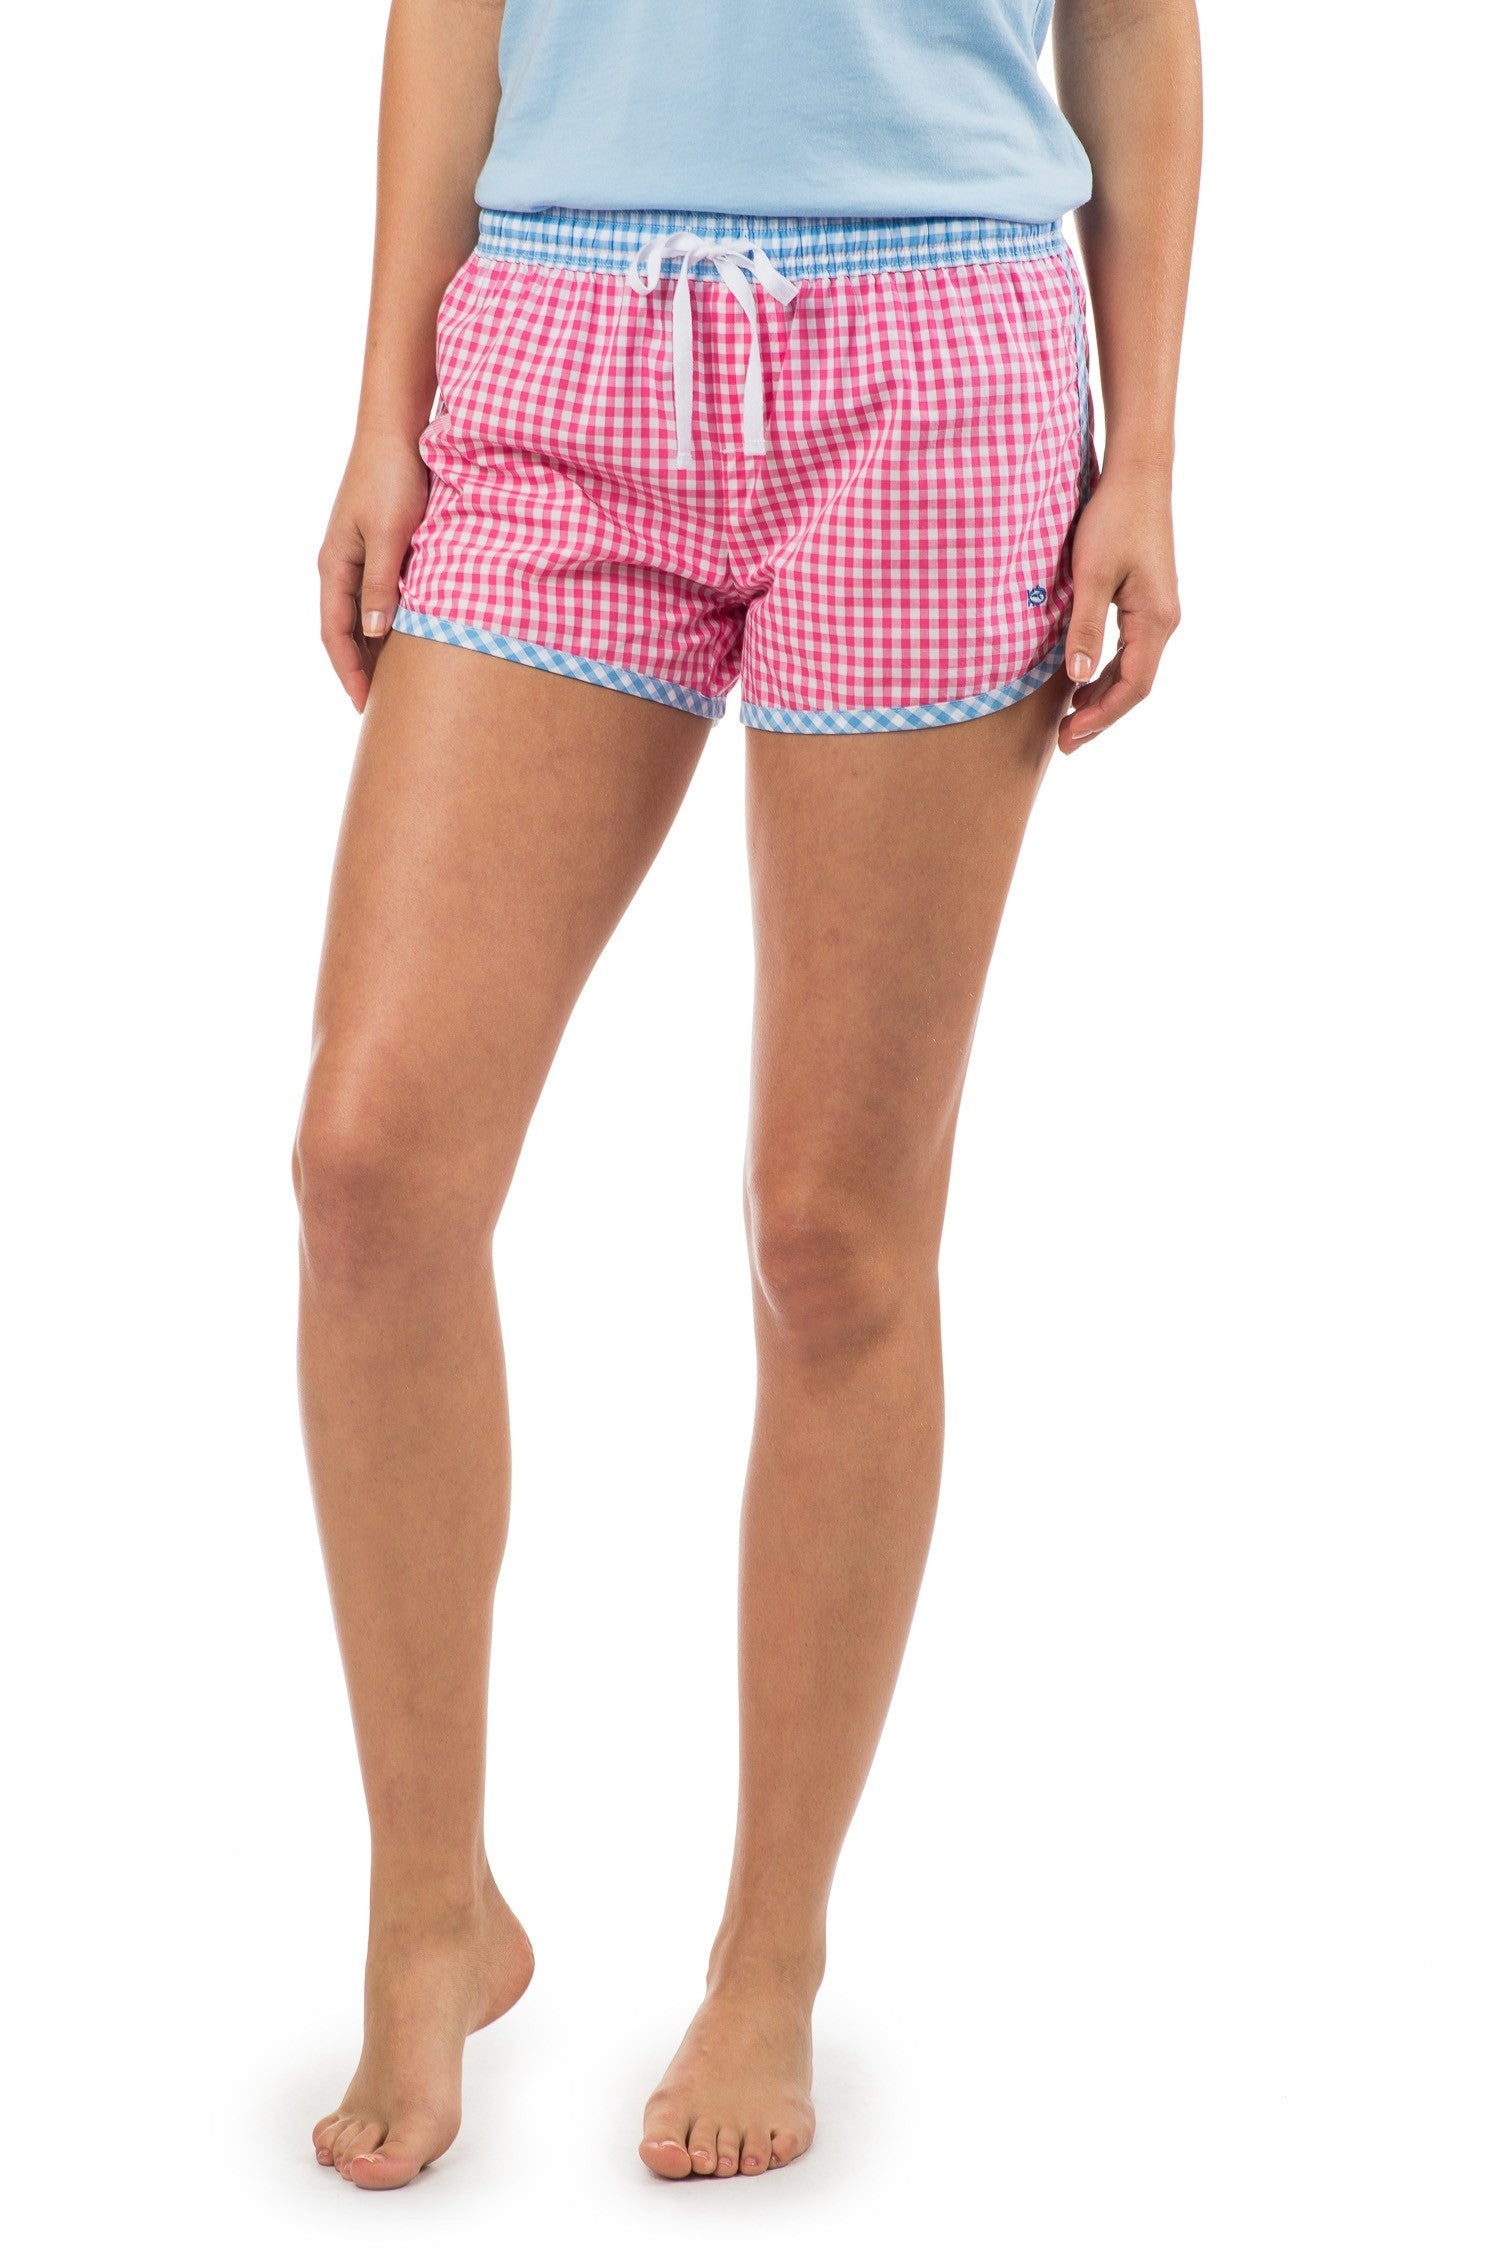 Southern Tide Gingham Lounge Short - Bloom Pink Front View